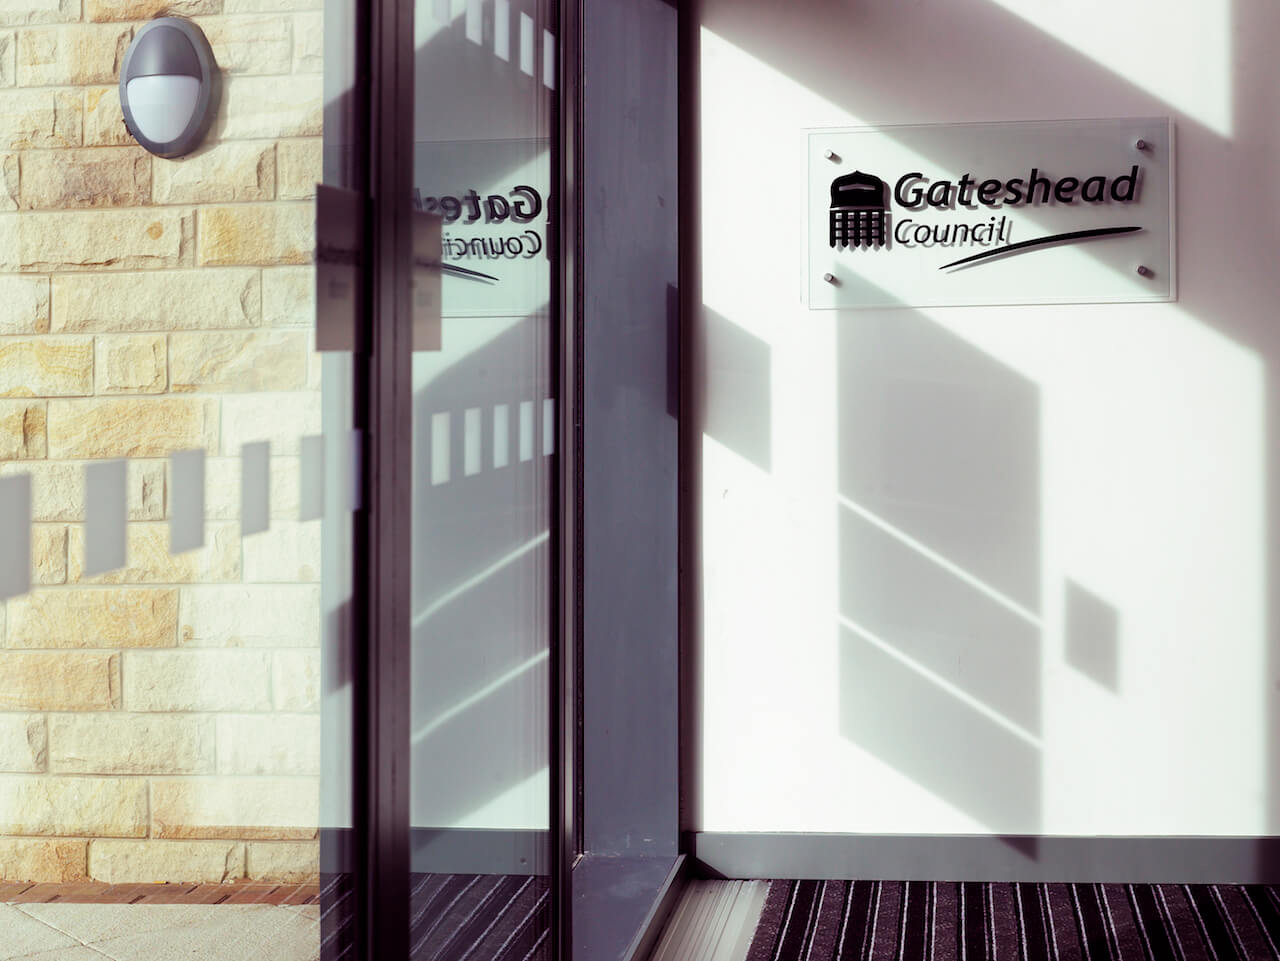 Window manifestations display Gateshead Council's logo on the sports facility doors